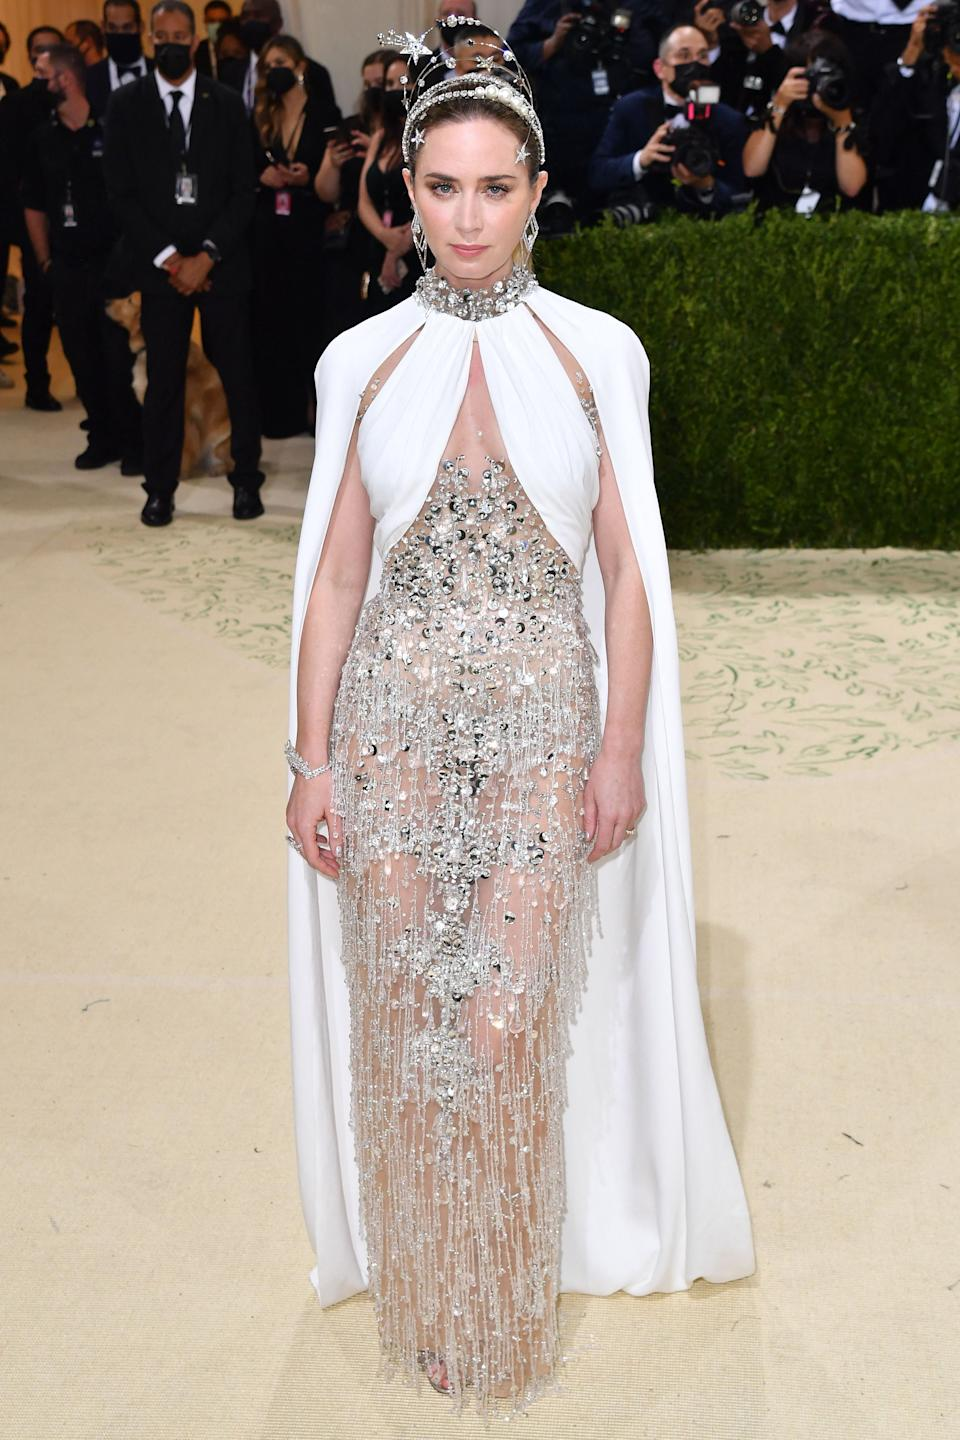 British actress Emily Blunt arrives for the 2021 Met Gala at the Metropolitan Museum of Art on September 13, 2021 in New York. - This year's Met Gala has a distinctively youthful imprint, hosted by singer Billie Eilish, actor Timothee Chalamet, poet Amanda Gorman and tennis star Naomi Osaka, none of them older than 25. The 2021 theme is